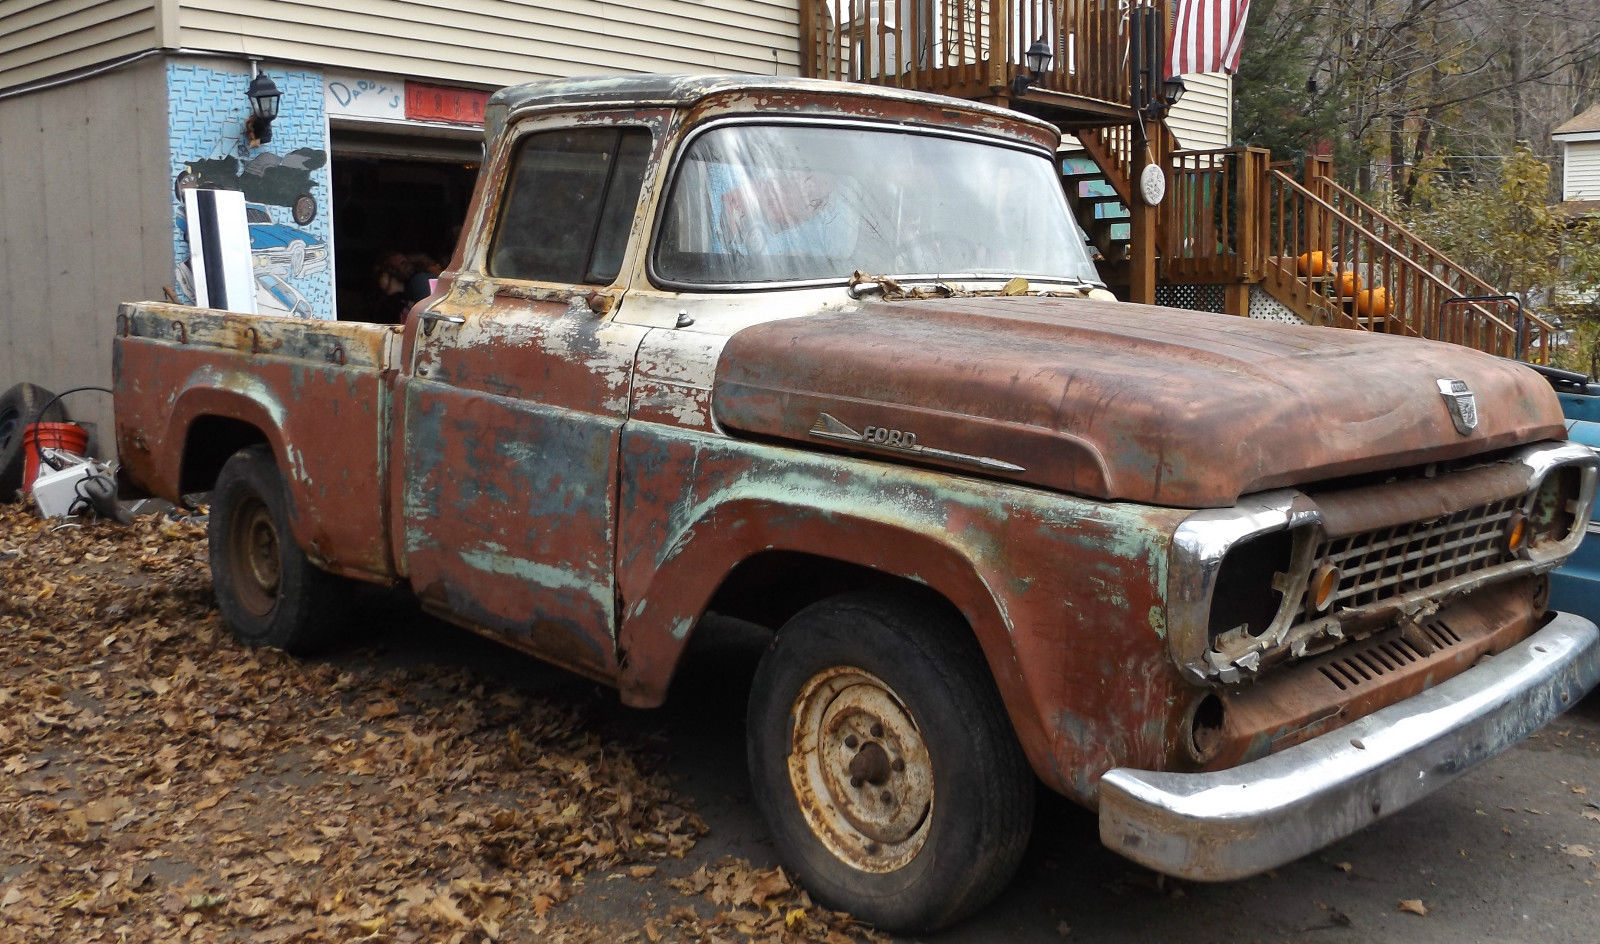 1958 Ford F-100 pick up